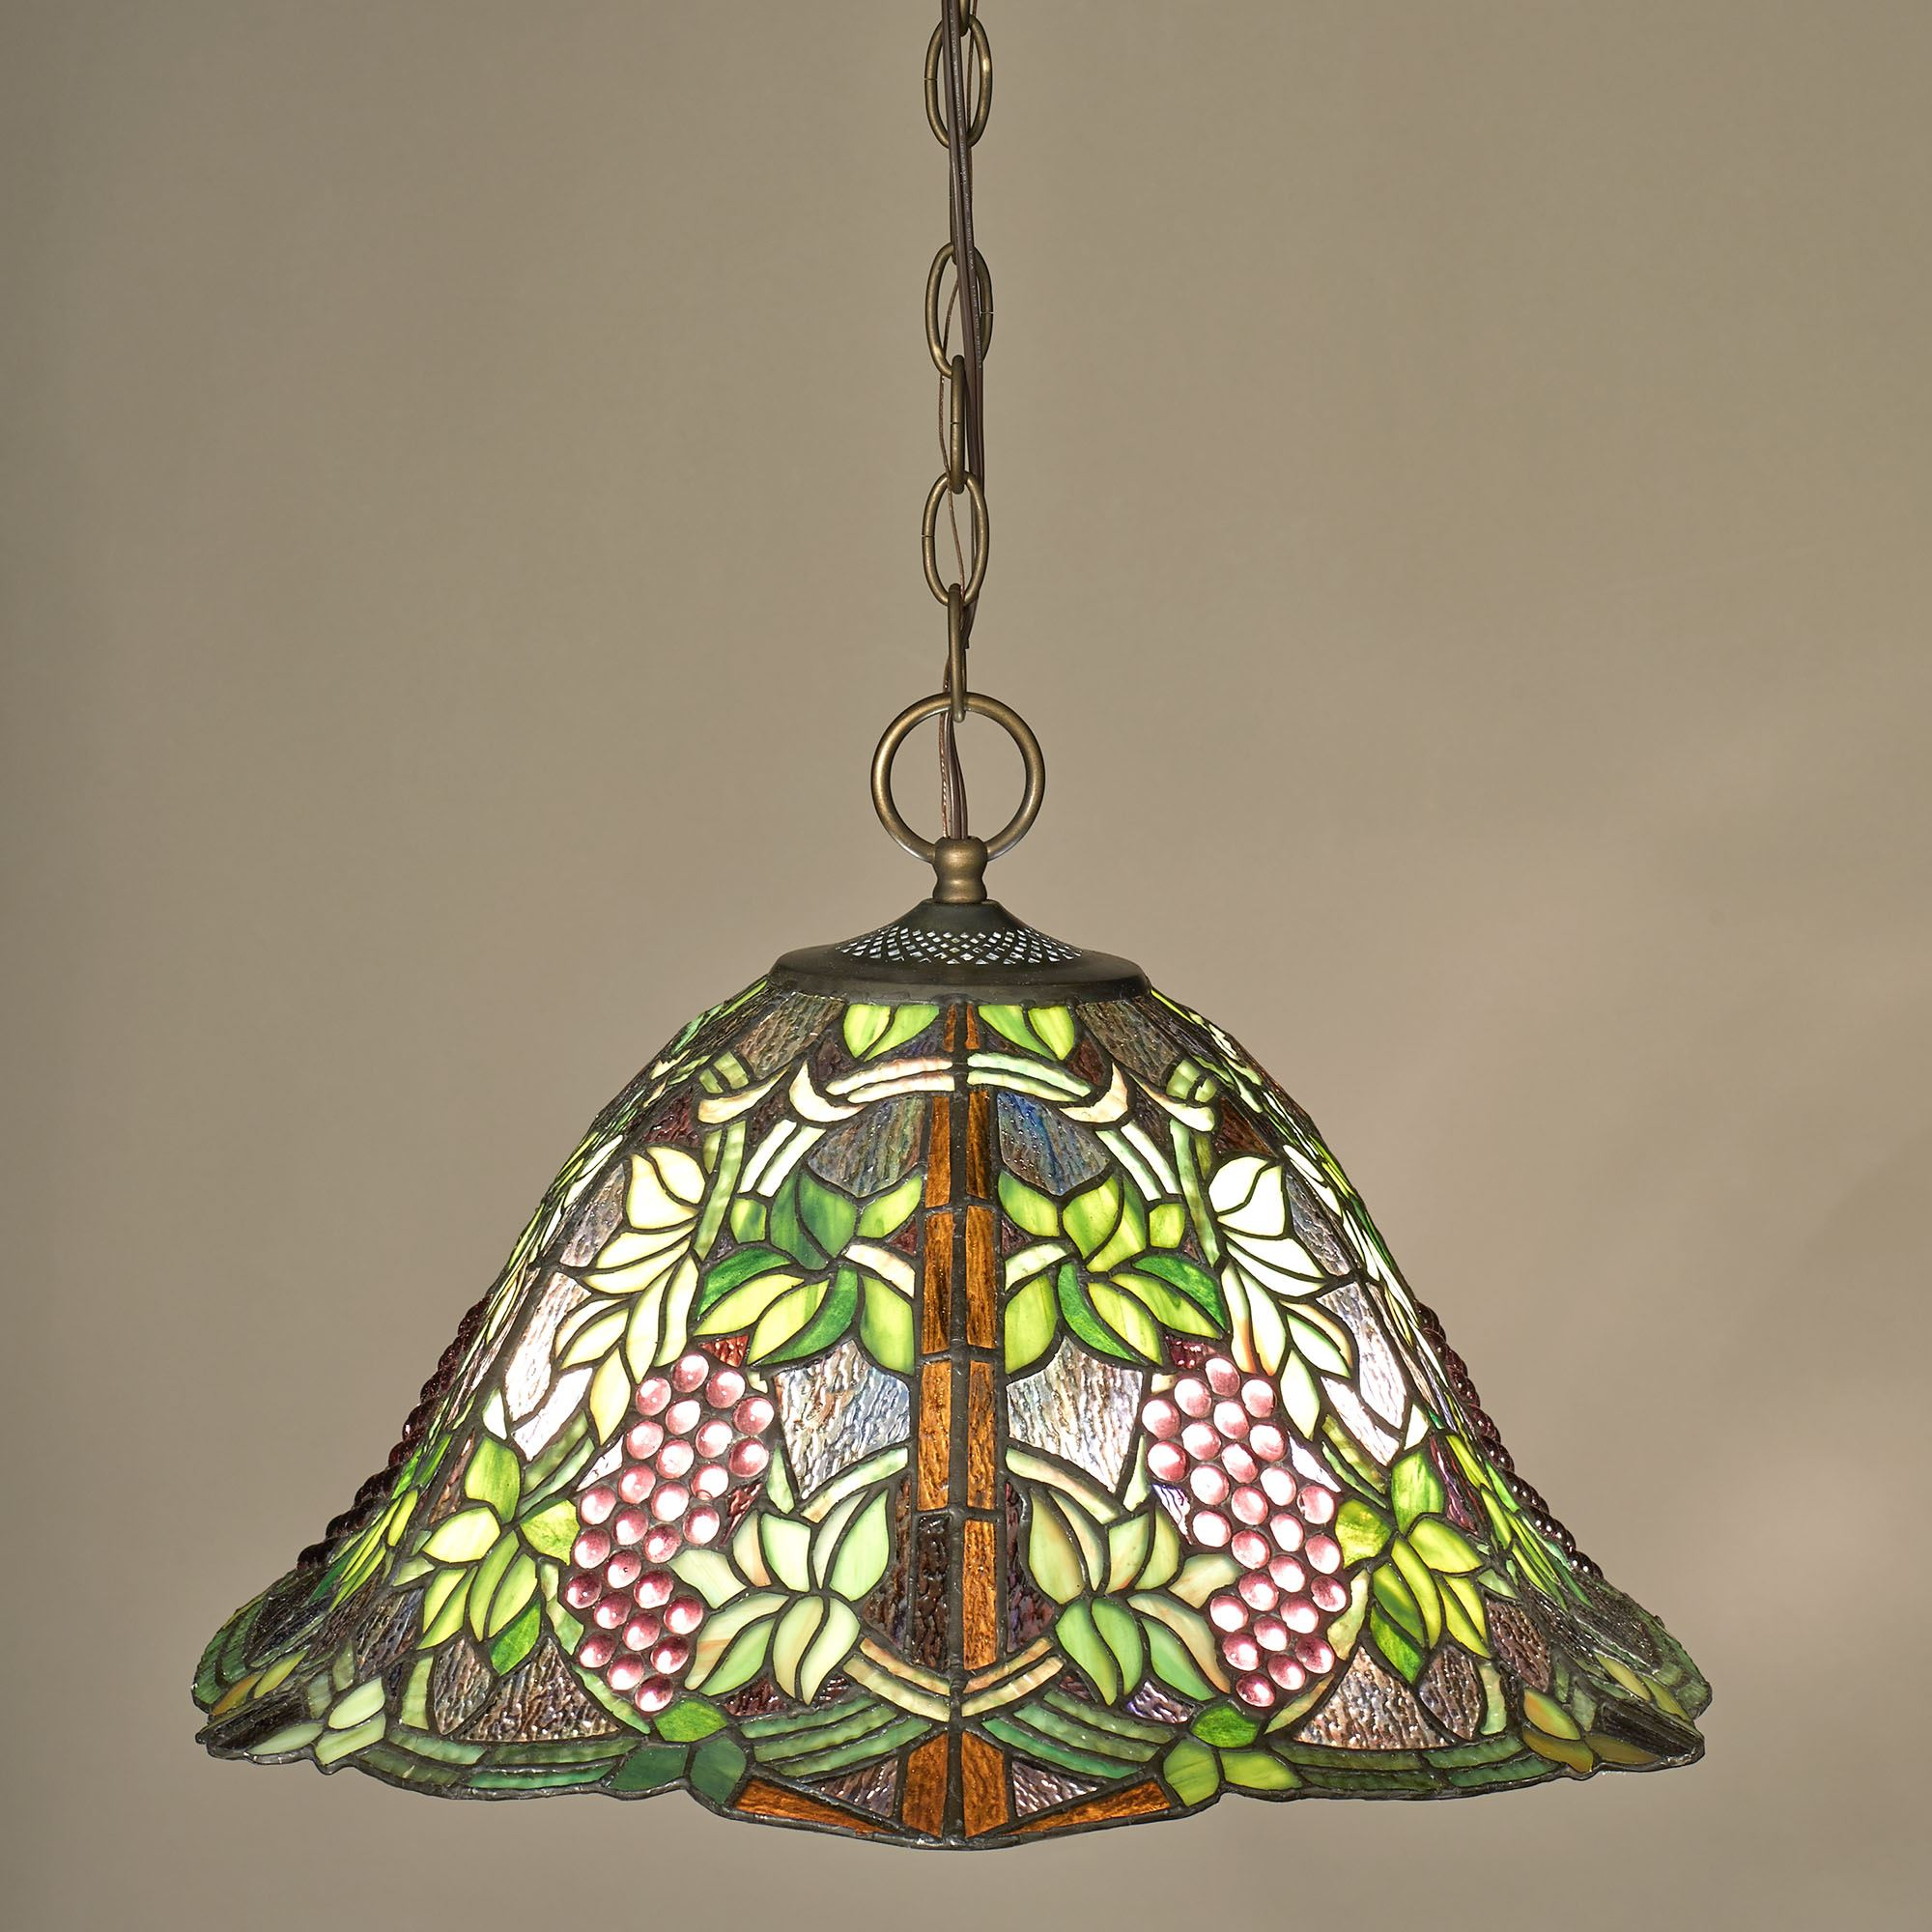 stained alahambre ceiling image by shop tiffany lights type glass light bulb pendant